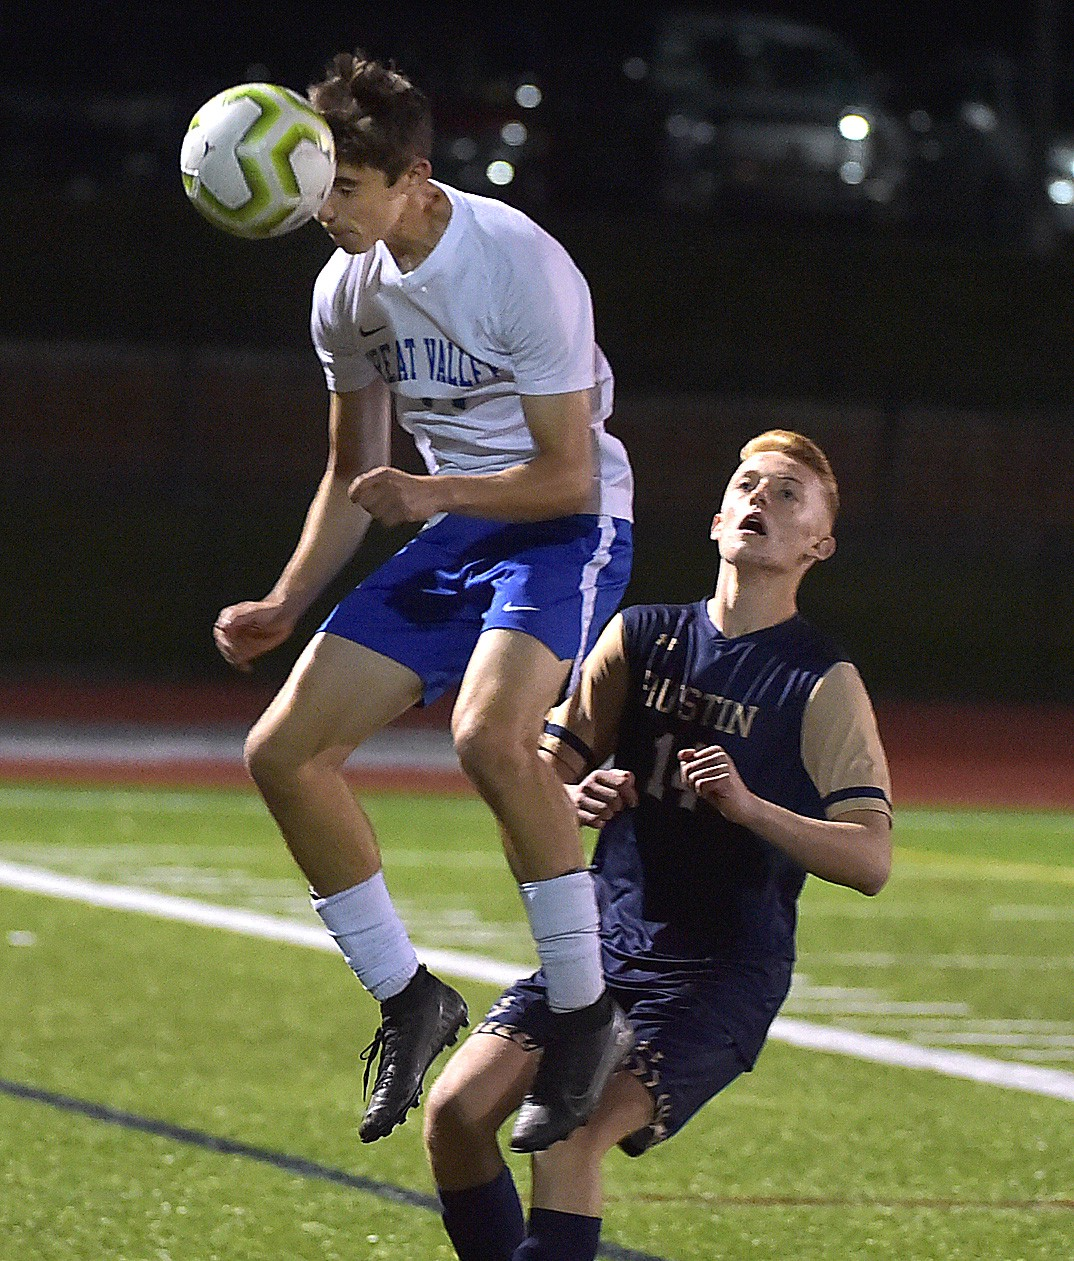 Great Valley defender (14) Freddie Marcks heads a ball out of bounds in front of Rustin Will Mason as the Patriots defeated the Golden Knights 1-0 on a goal by Karl Brandt.